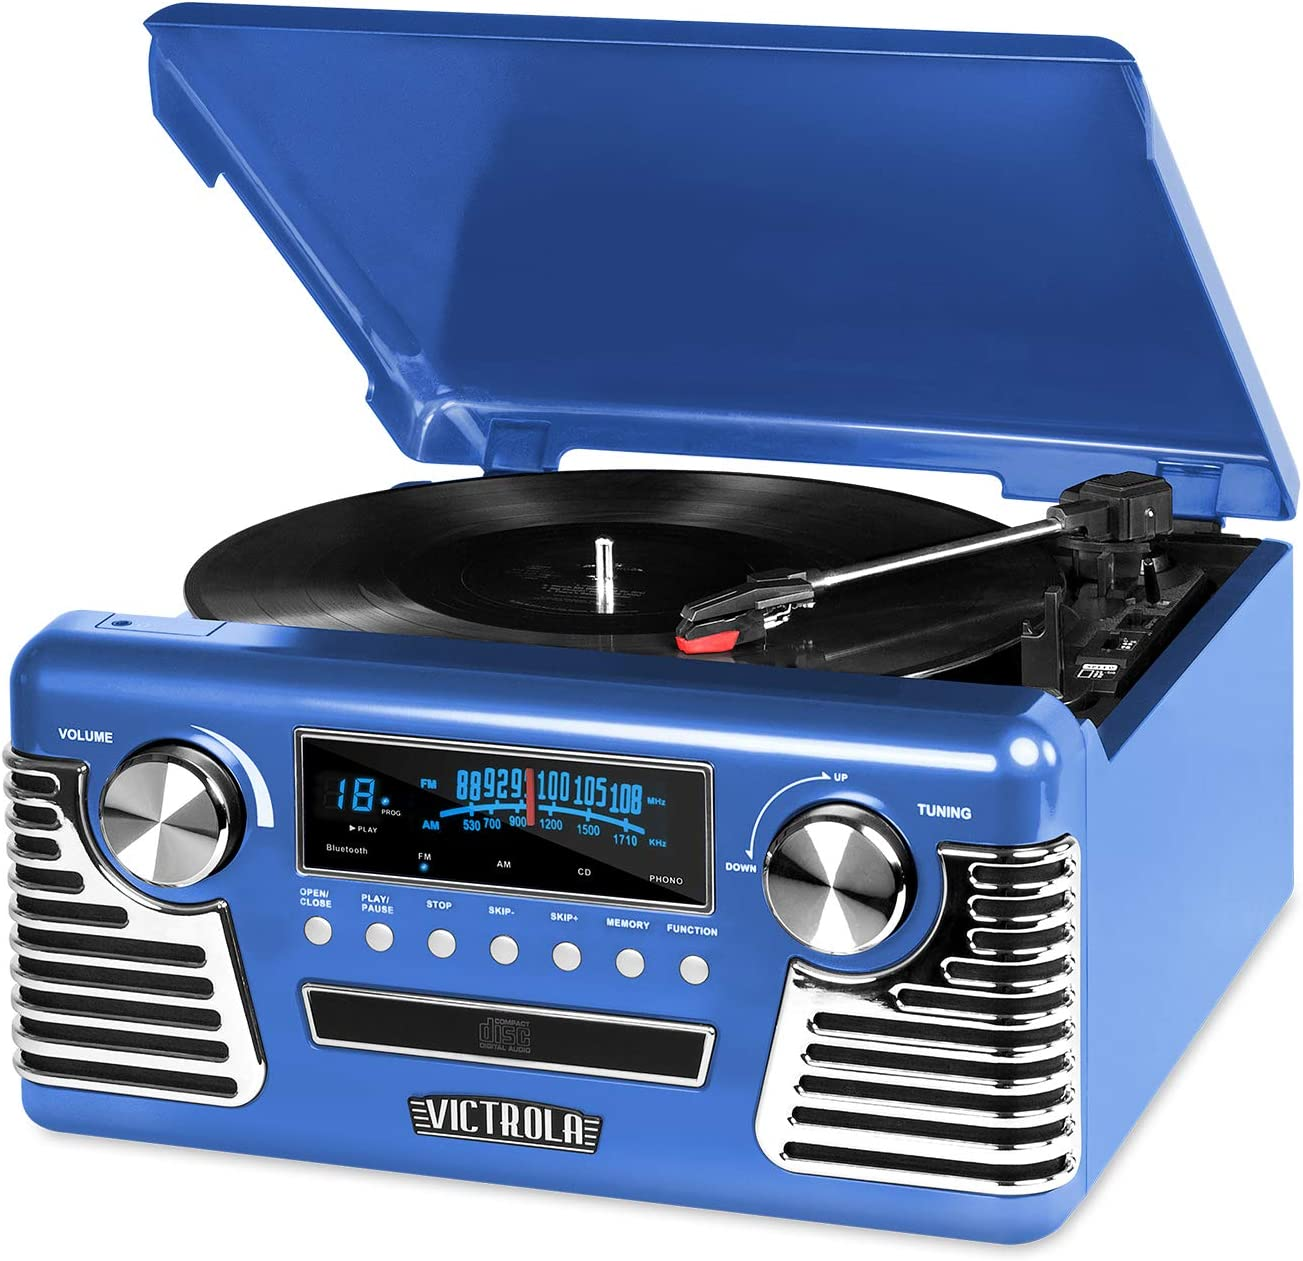 Victrola 50's Retro Bluetooth Record Player & Multimedia Center with Built-in Speakers - 3-Speed Turntable, CD Player, AM/FM Radio | Vinyl to MP3 Recording | Wireless Music Streaming | Blue